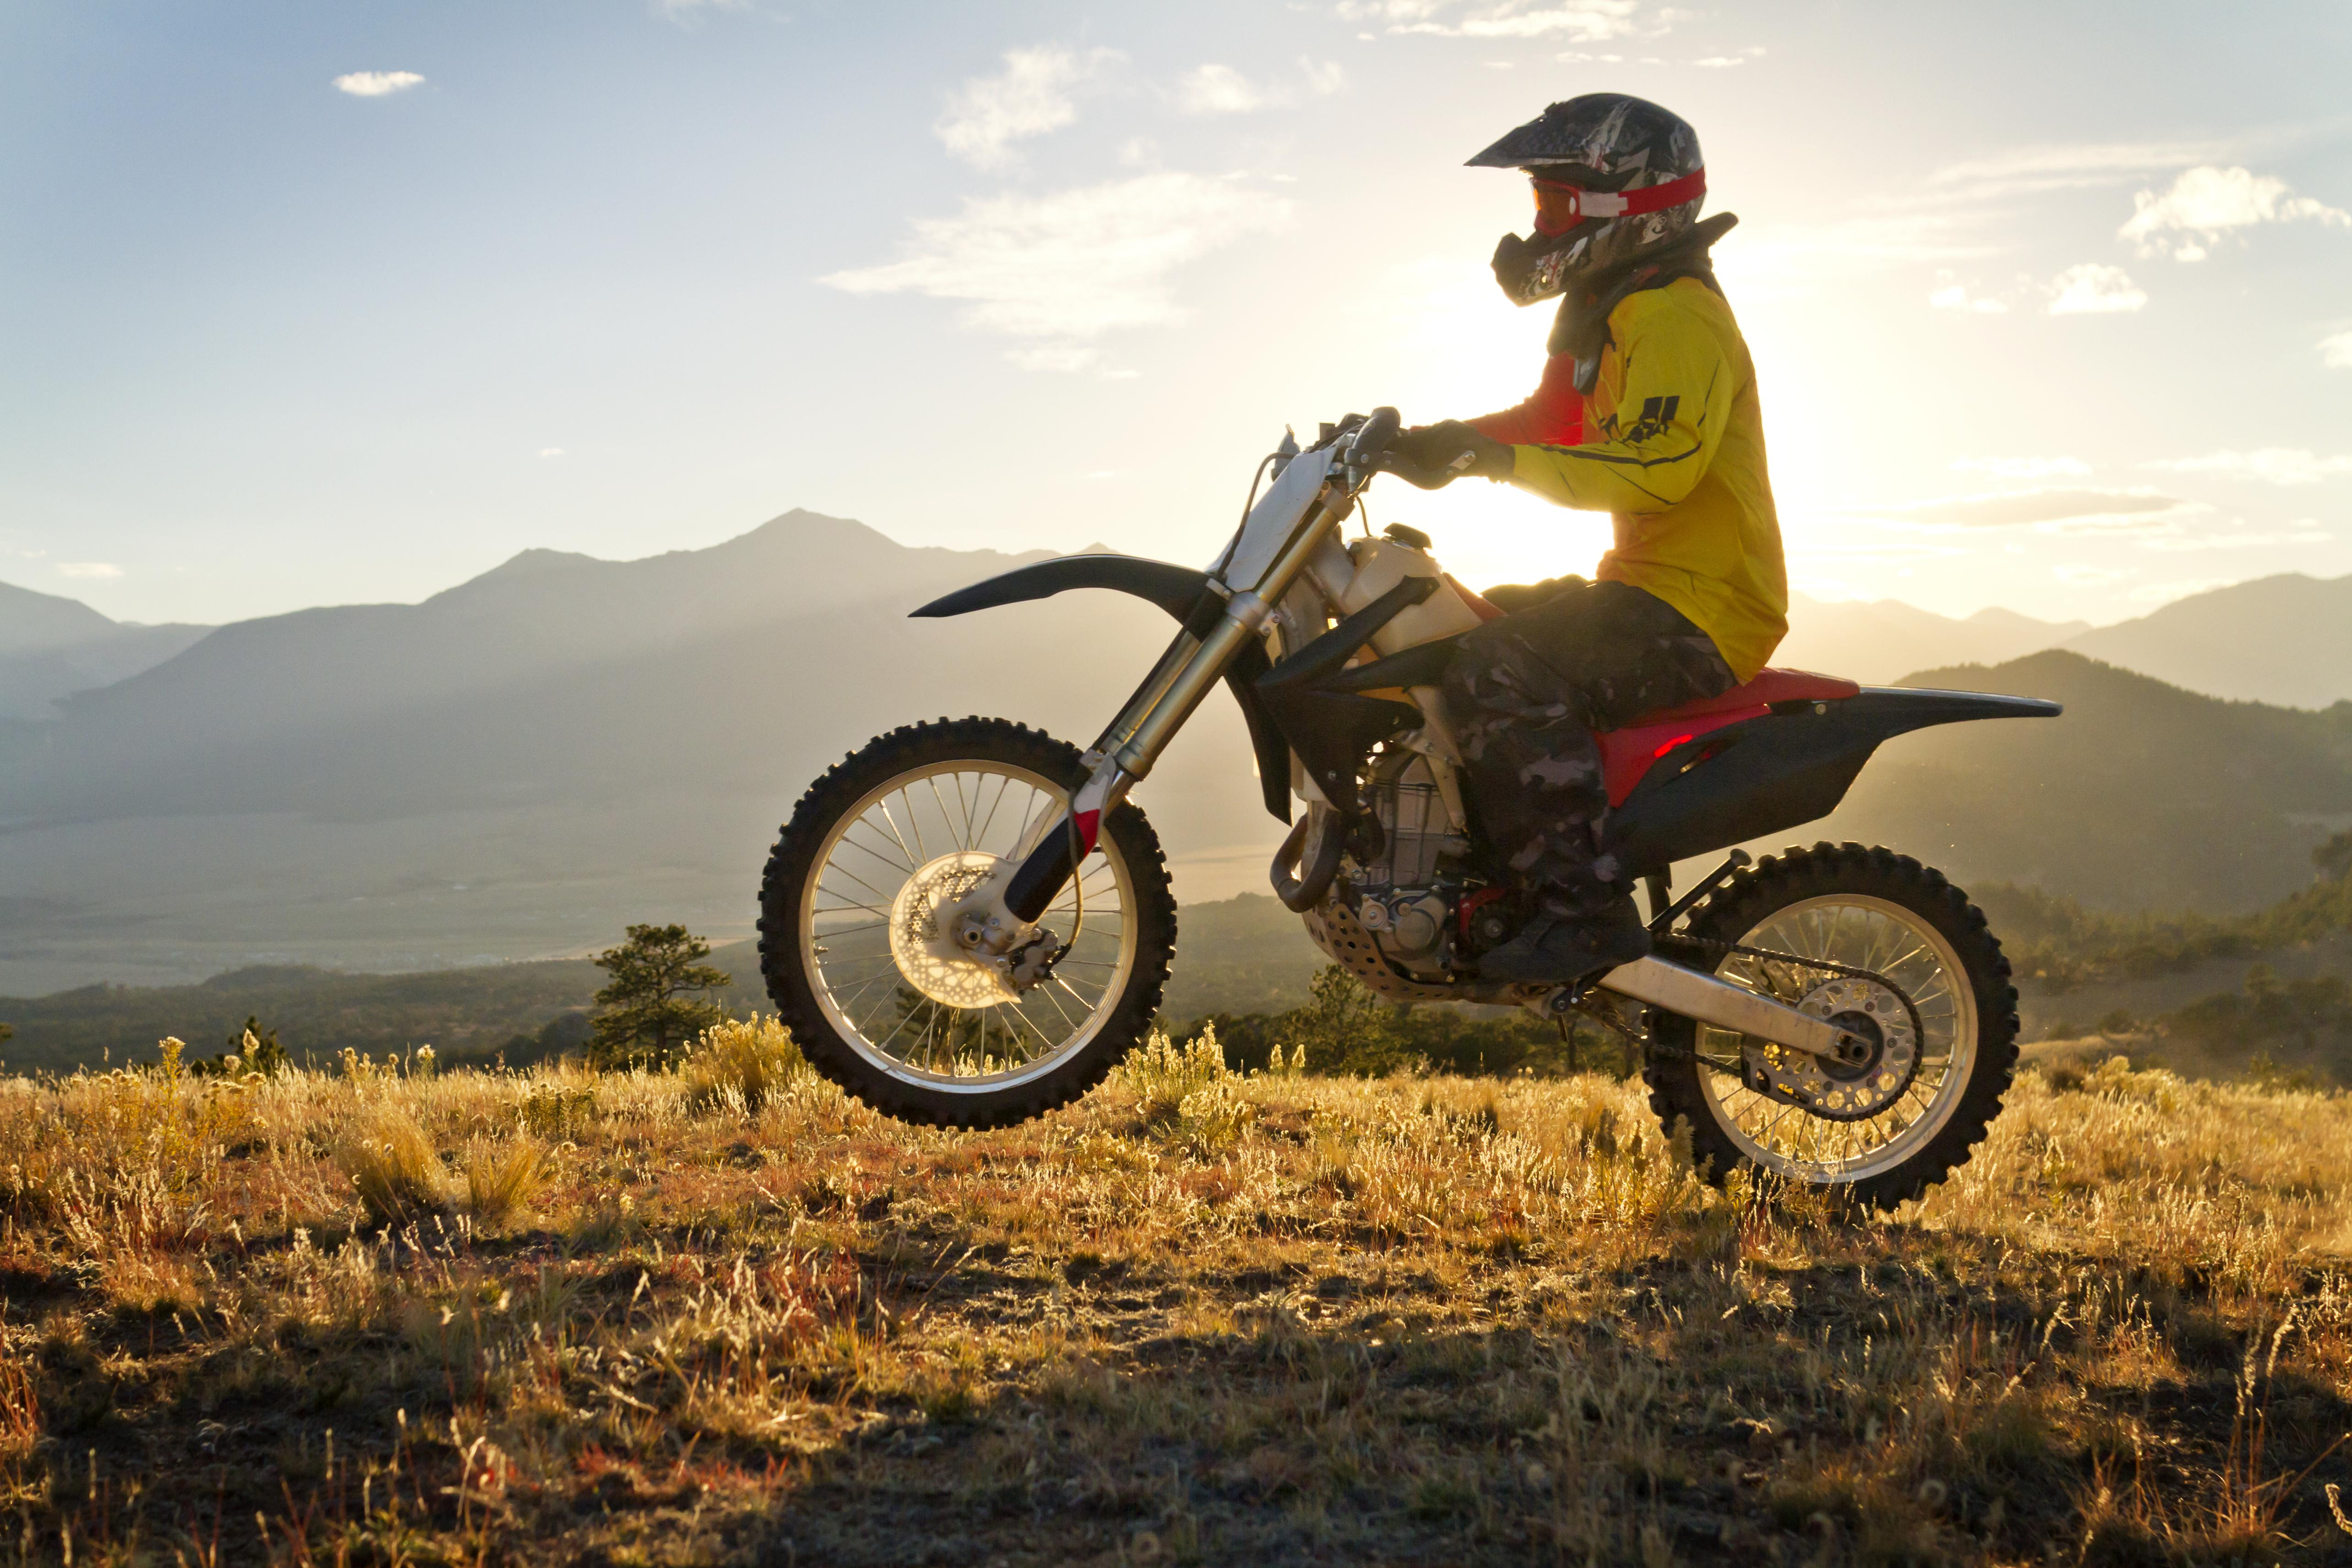 Man Riding Dirt Bike On Mountain